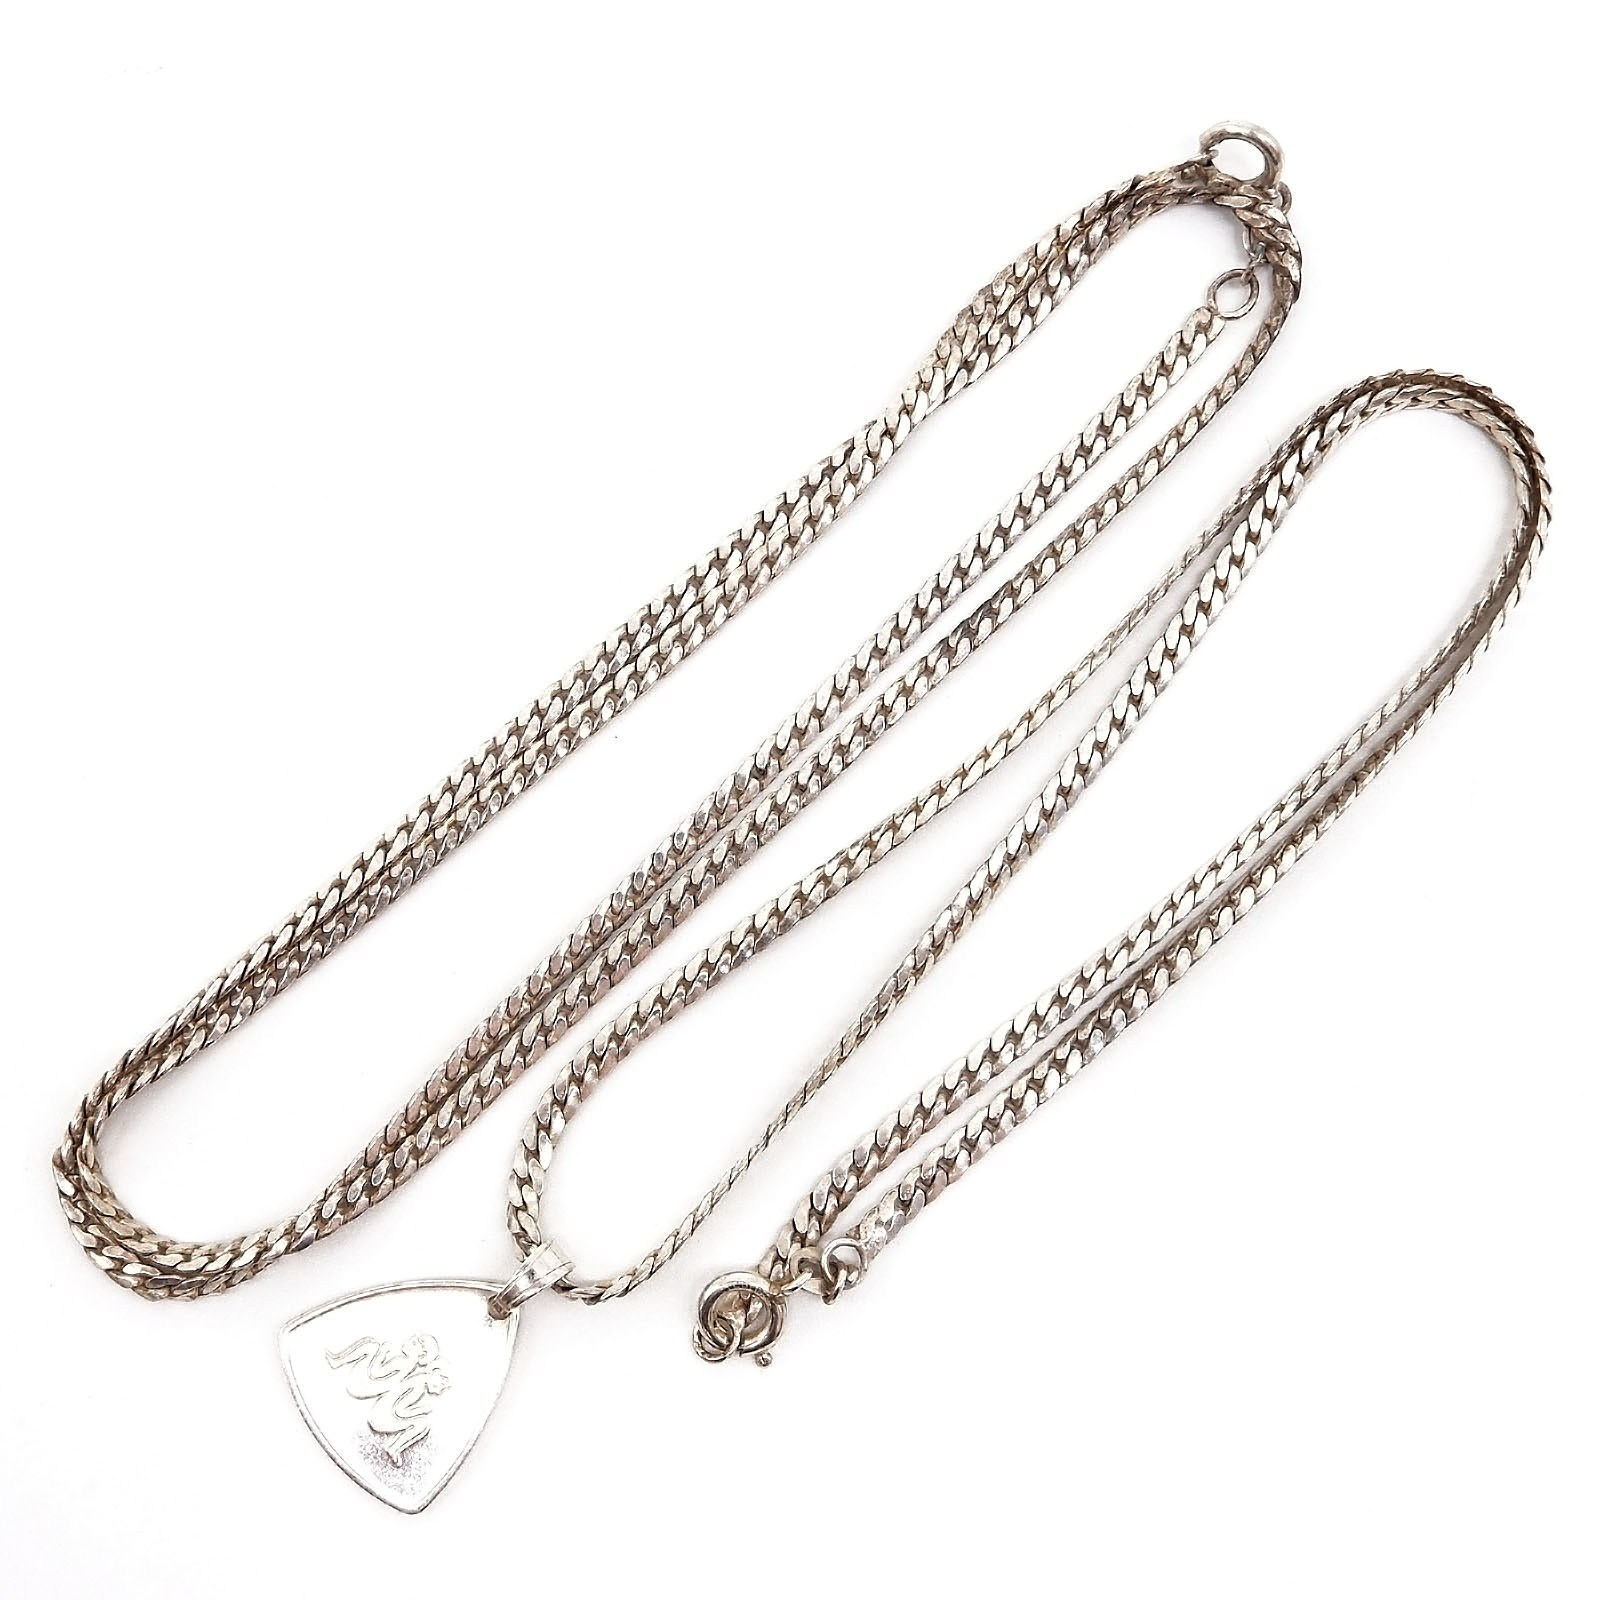 'Two Sterling Silver Filed Curb link Chains, One with a Pendant '